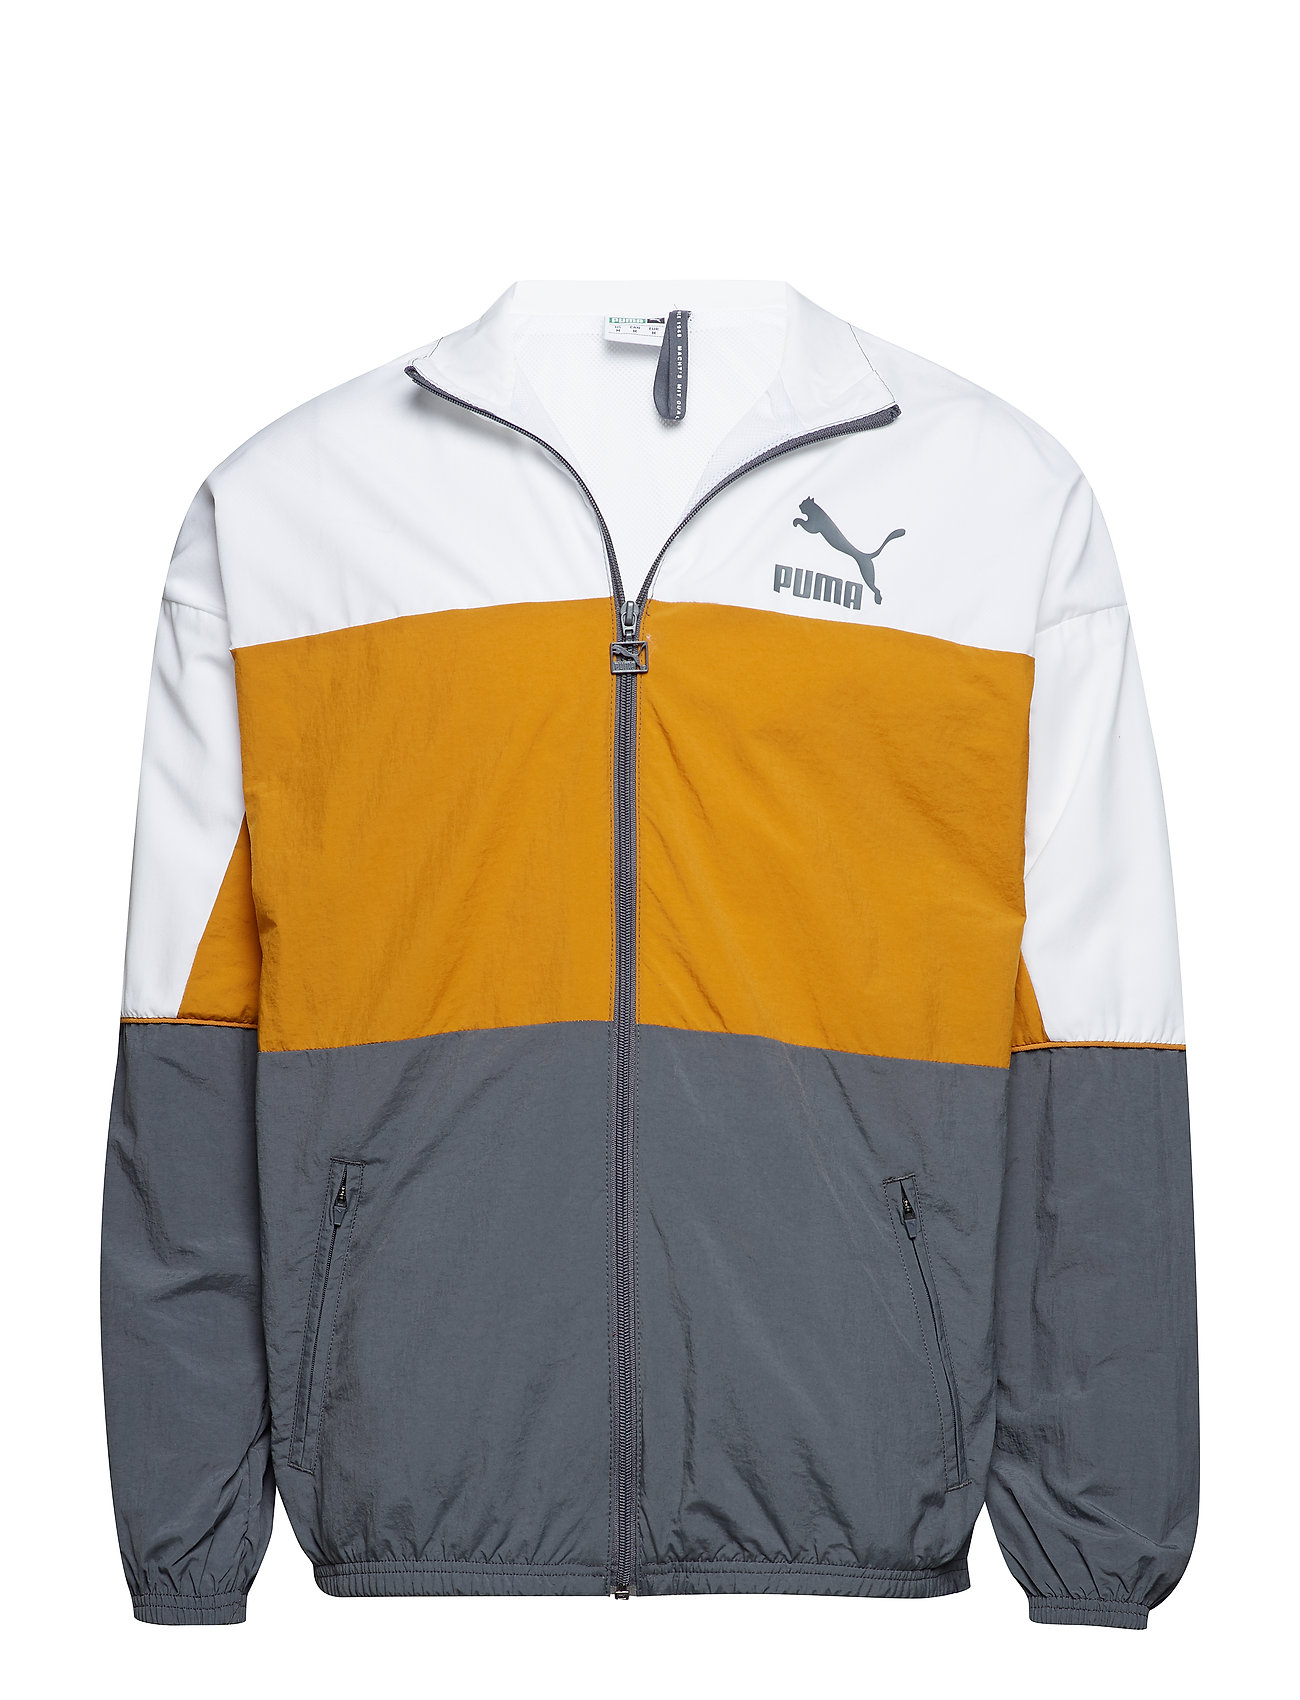 Jackets Track Gate PUMA £40 Woven Iron Jacket Retro 70 4w58q6xn